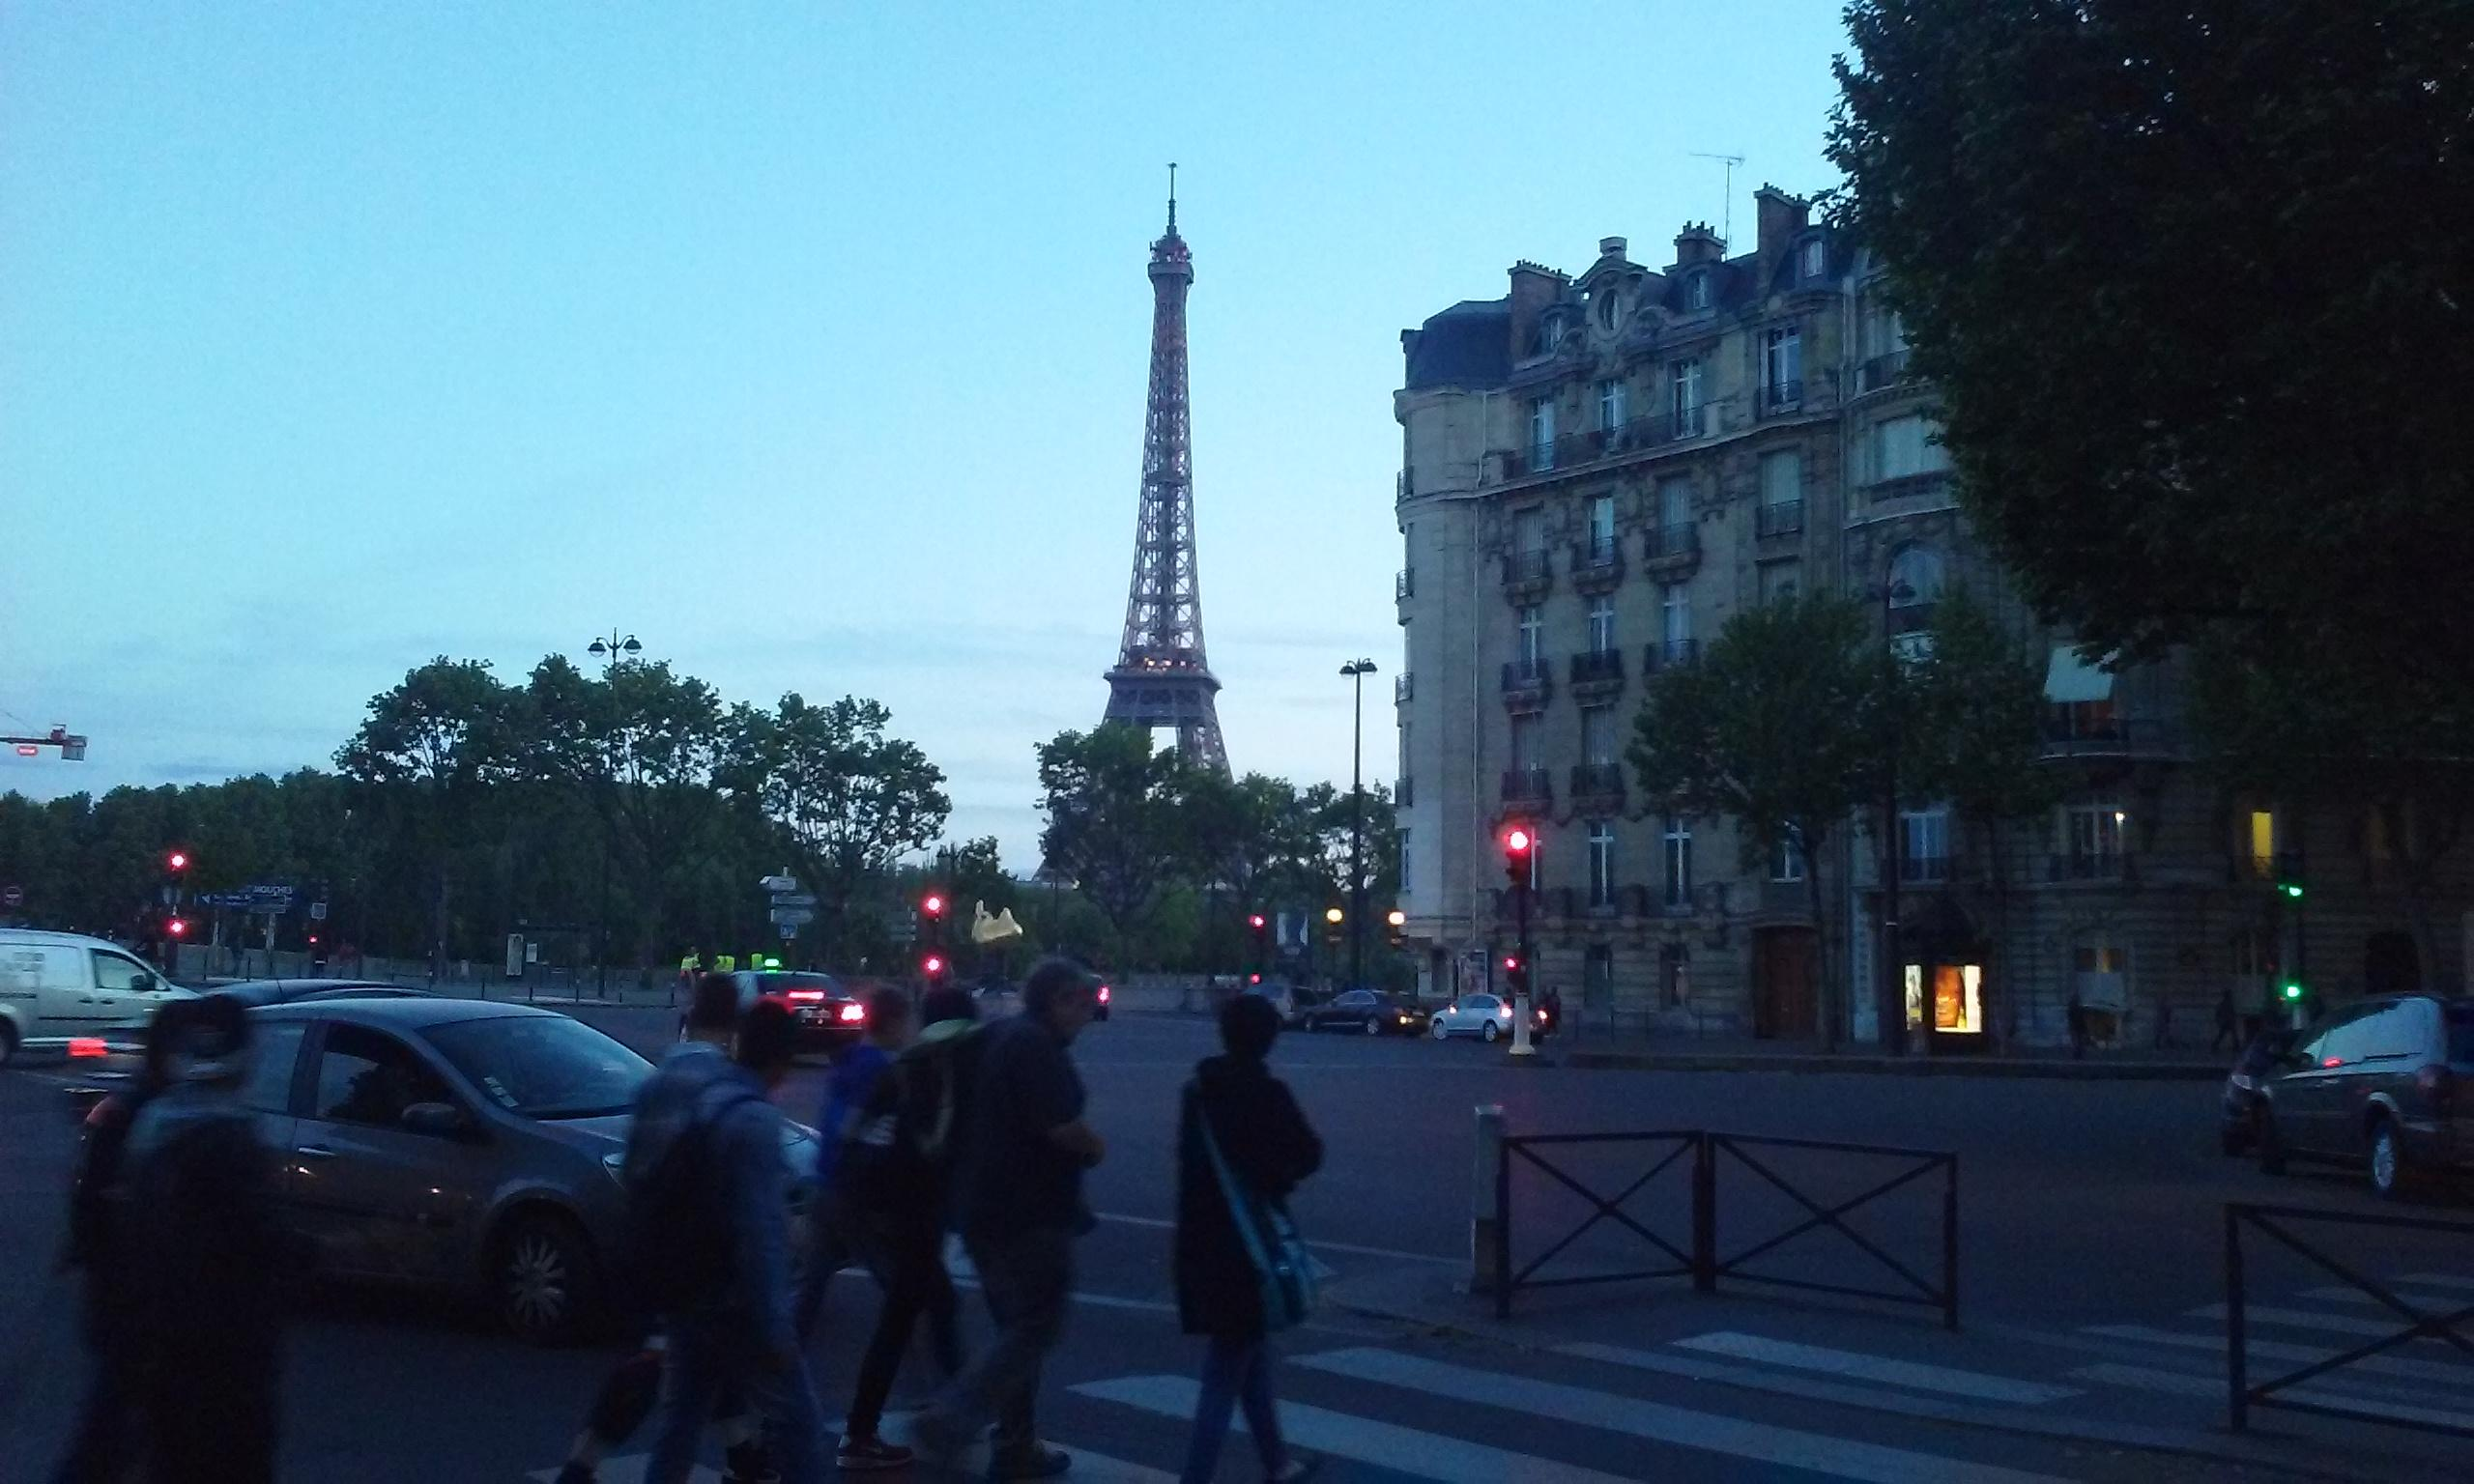 There are several nice cafes near the Eiffel Tower and the neighborhood has a great selec